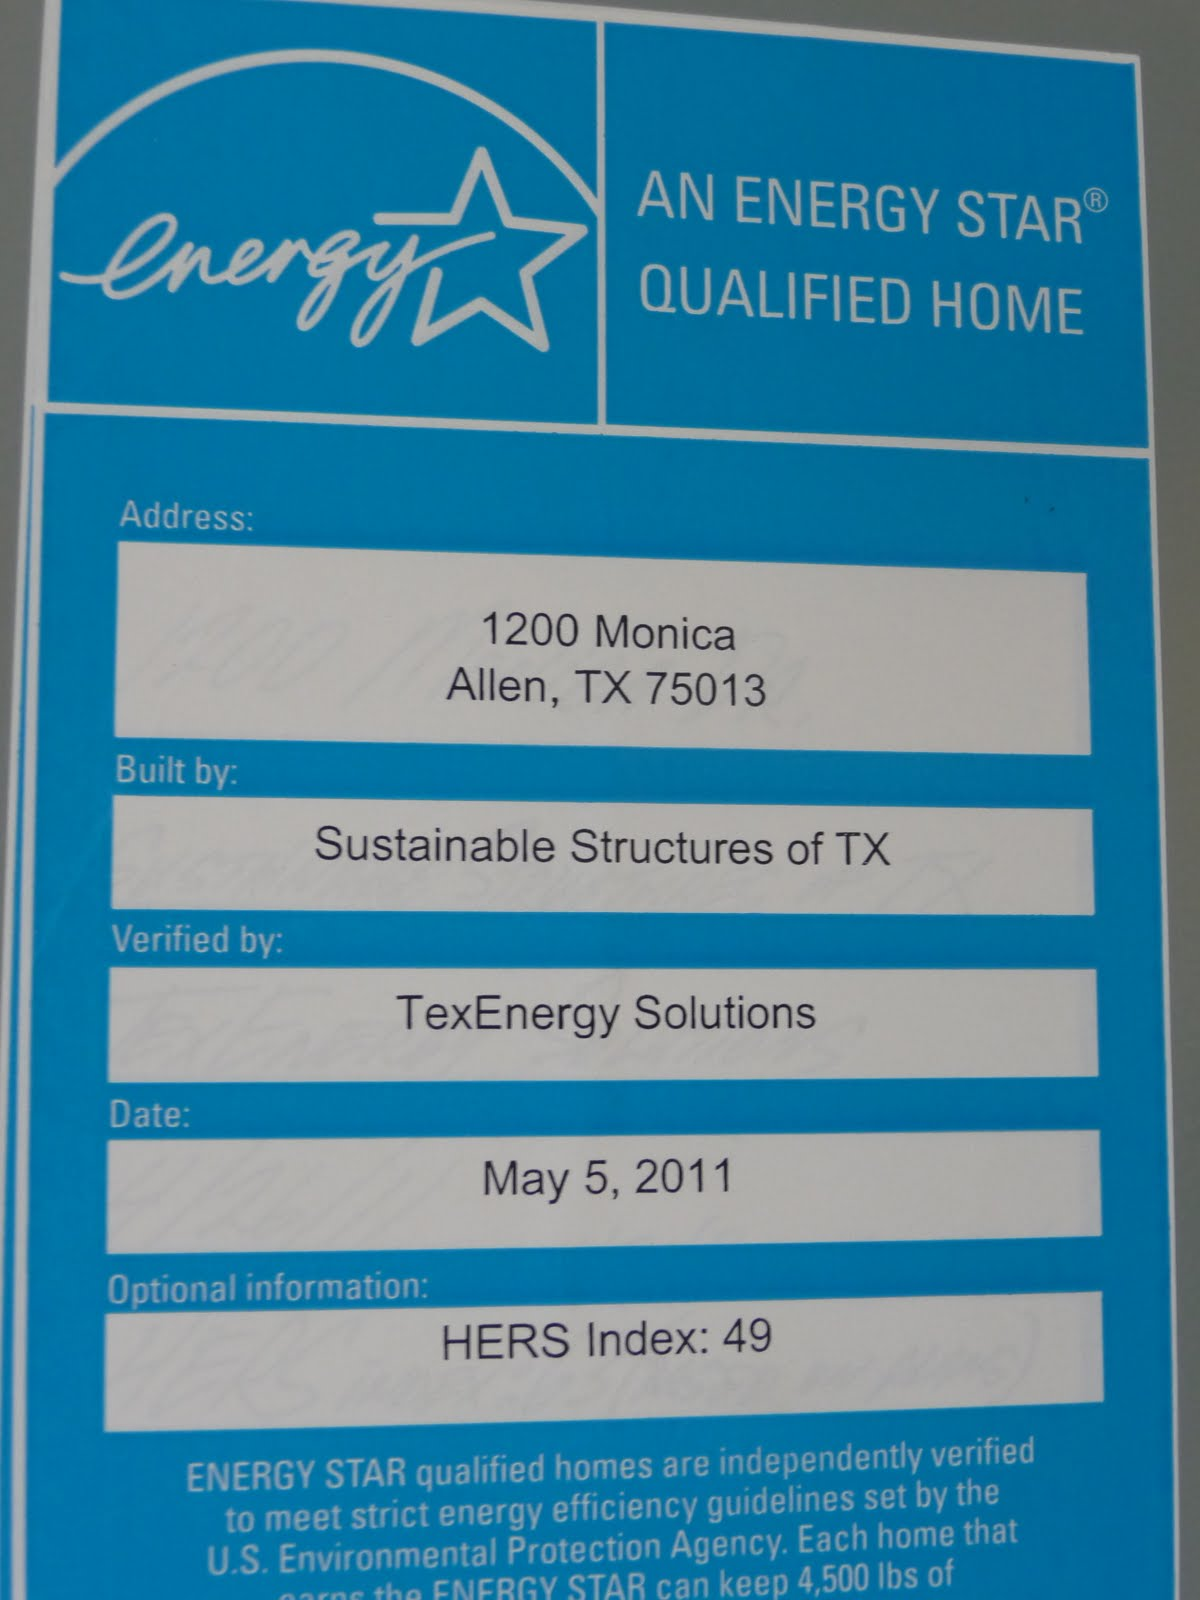 A better earth montgomery farm a vision for a for Most energy efficient home construction